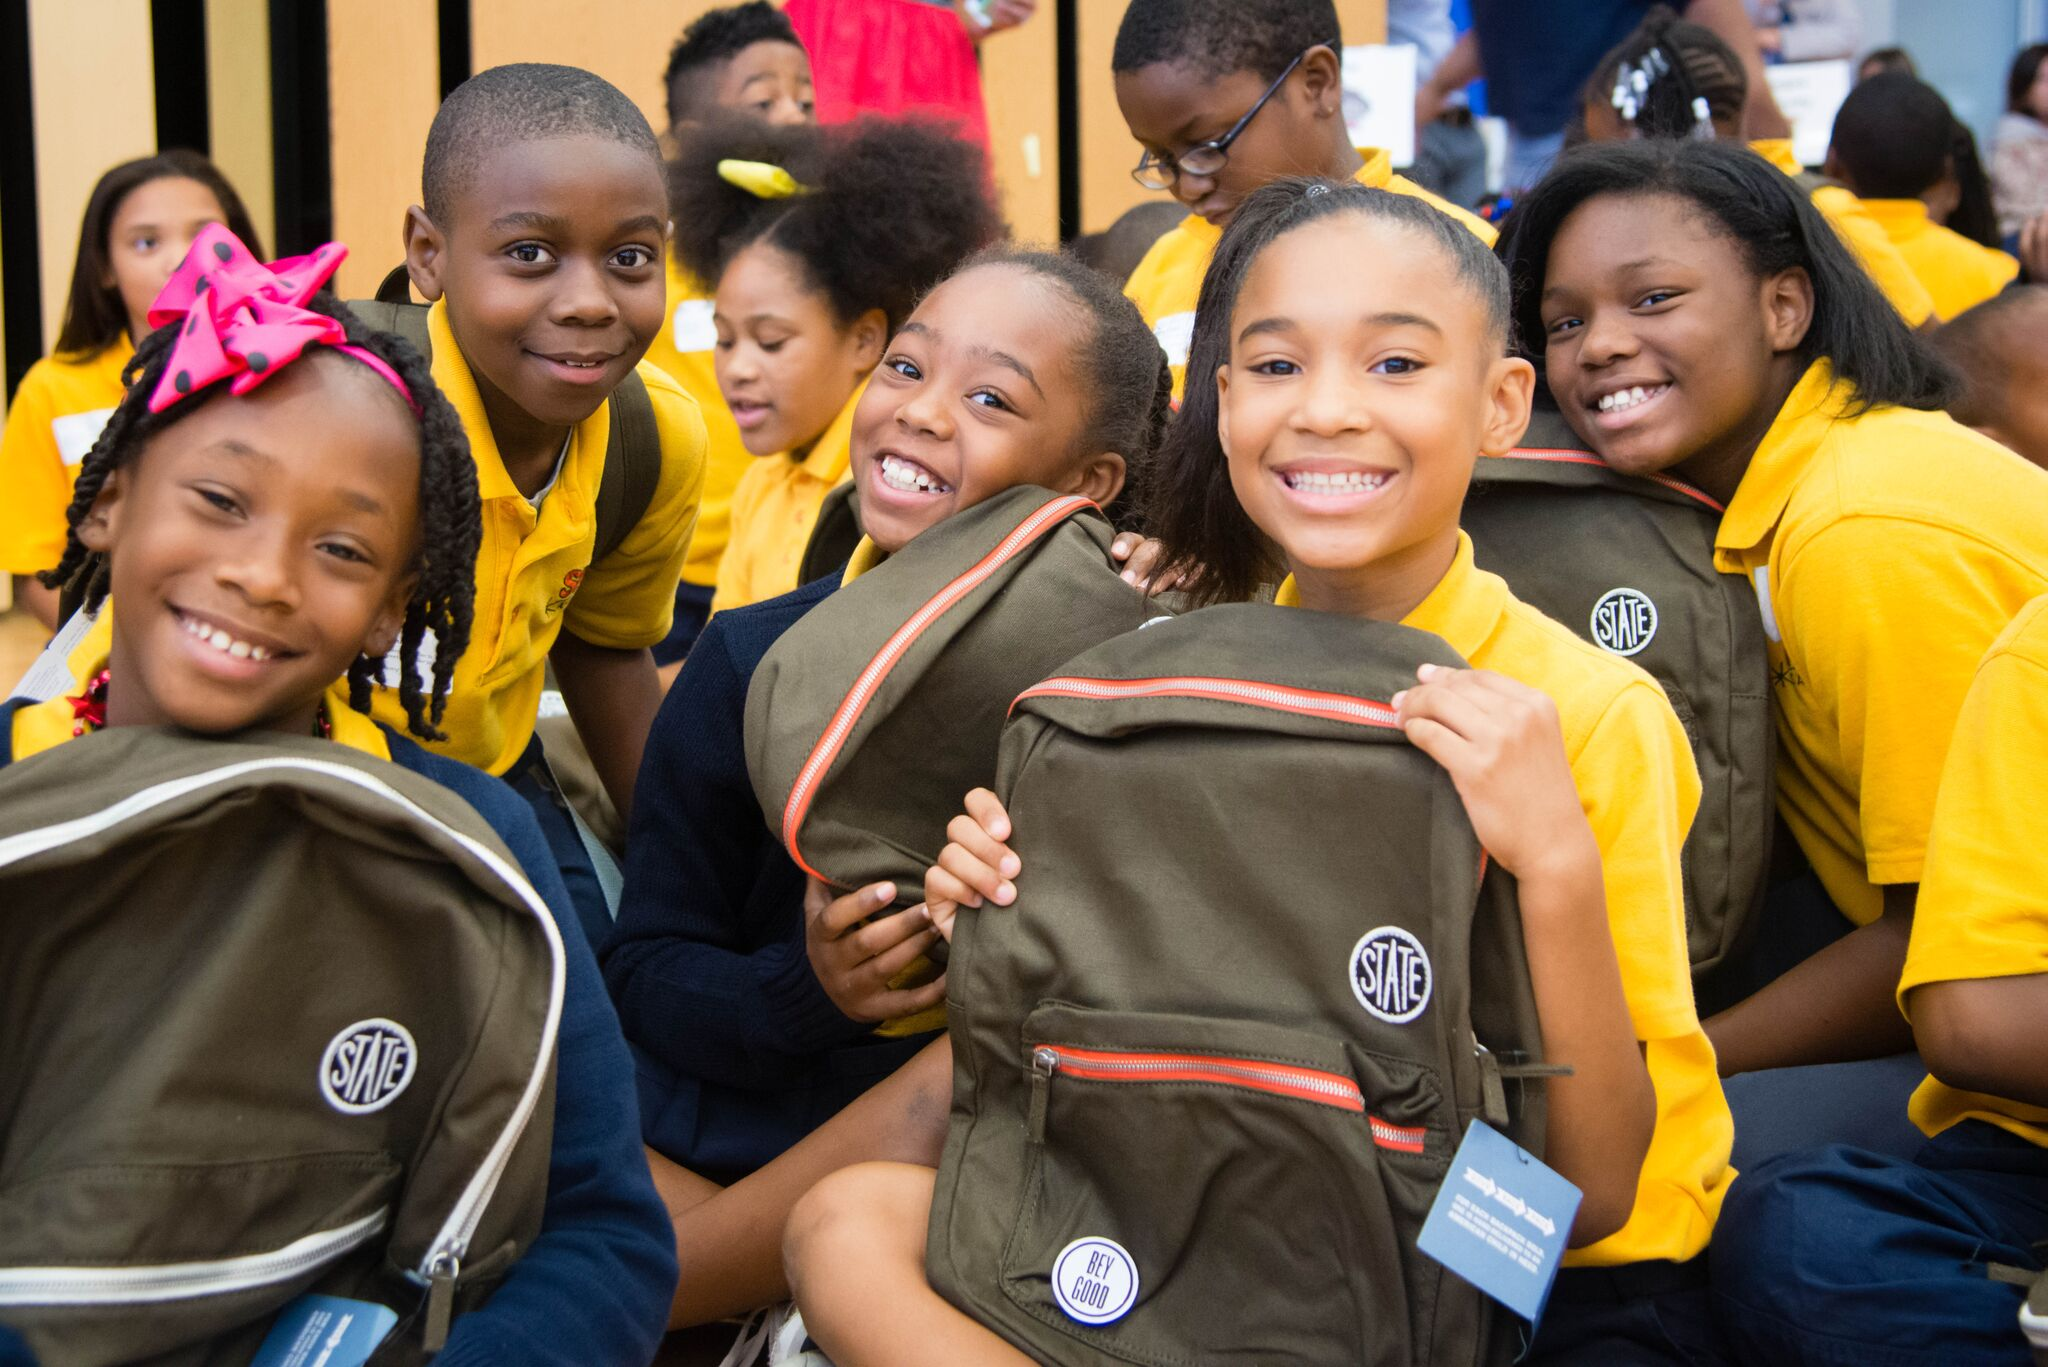 Millennium S.I. Gives Back to Children in Need Through Partnership with State Bags at the Millennium Experience 2017